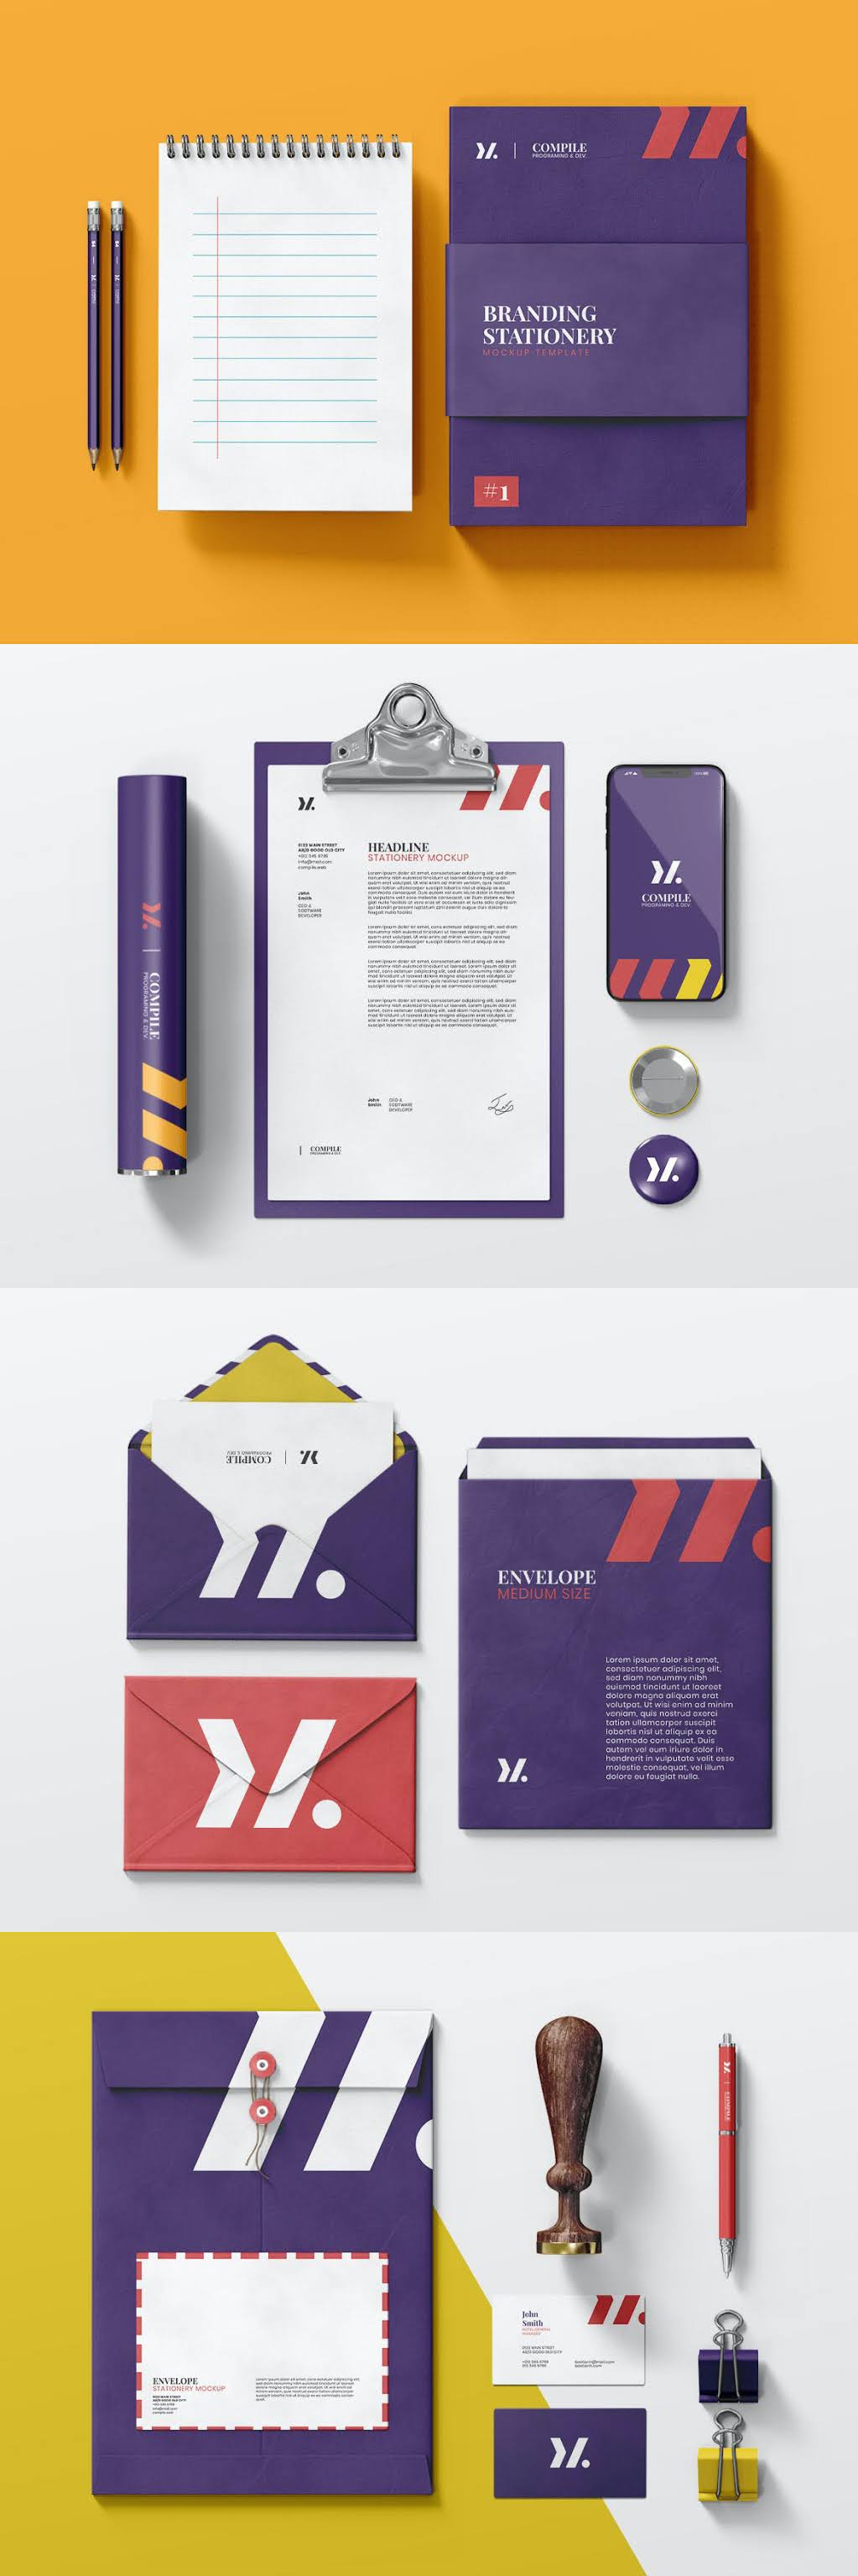 Stationery Mock Up Pack By Eightonesix Free Download